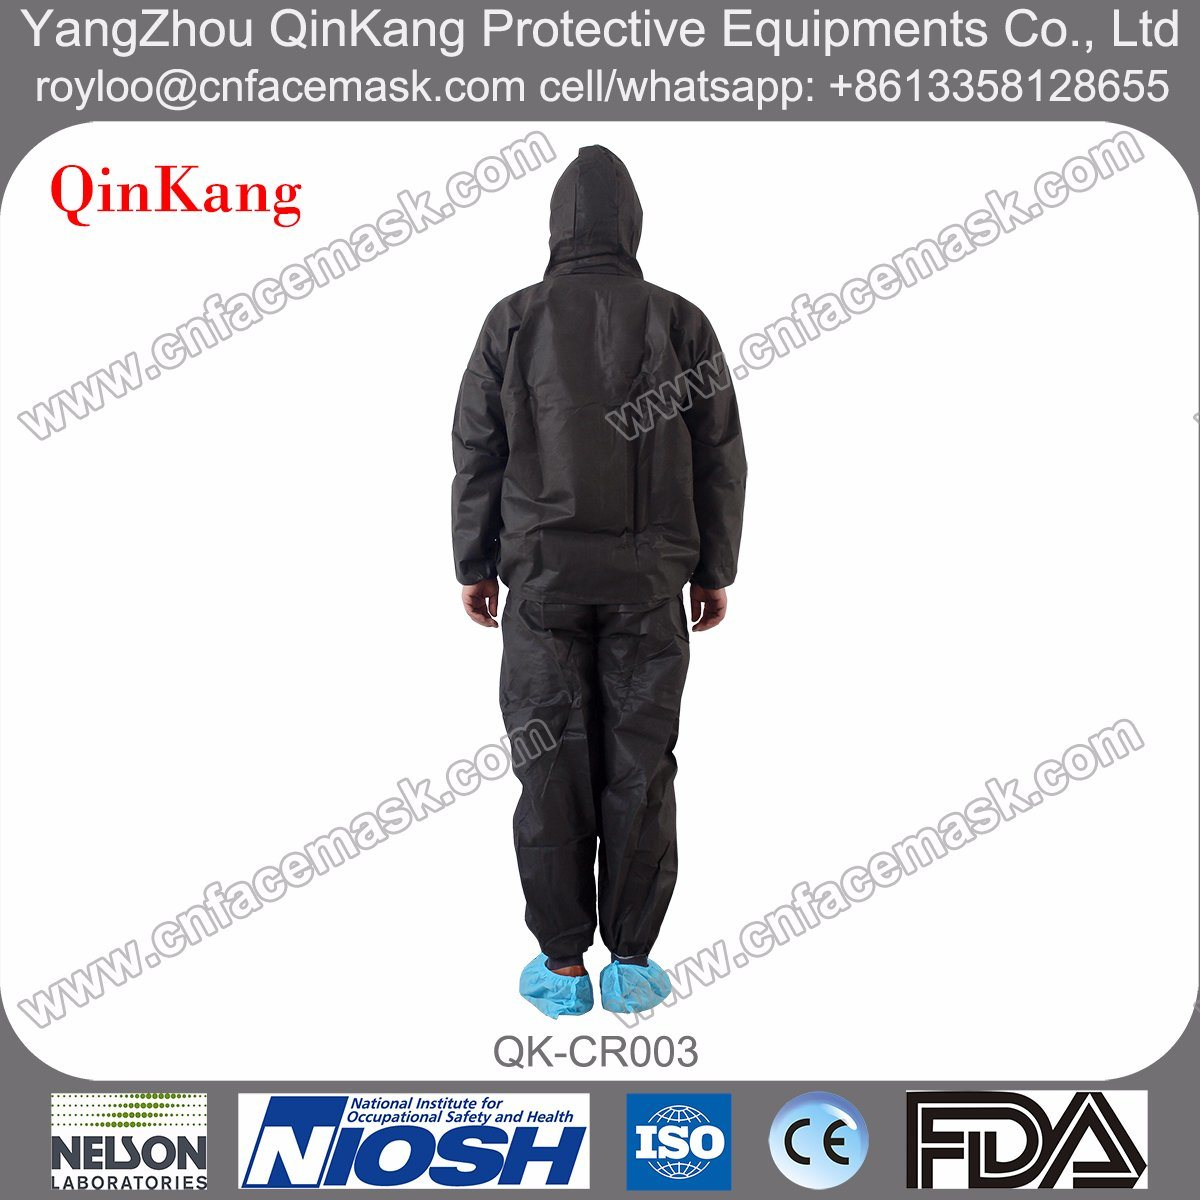 Spunbond Coverall Suit (Jacket & Trousers) for Painting and Cleaning Protection